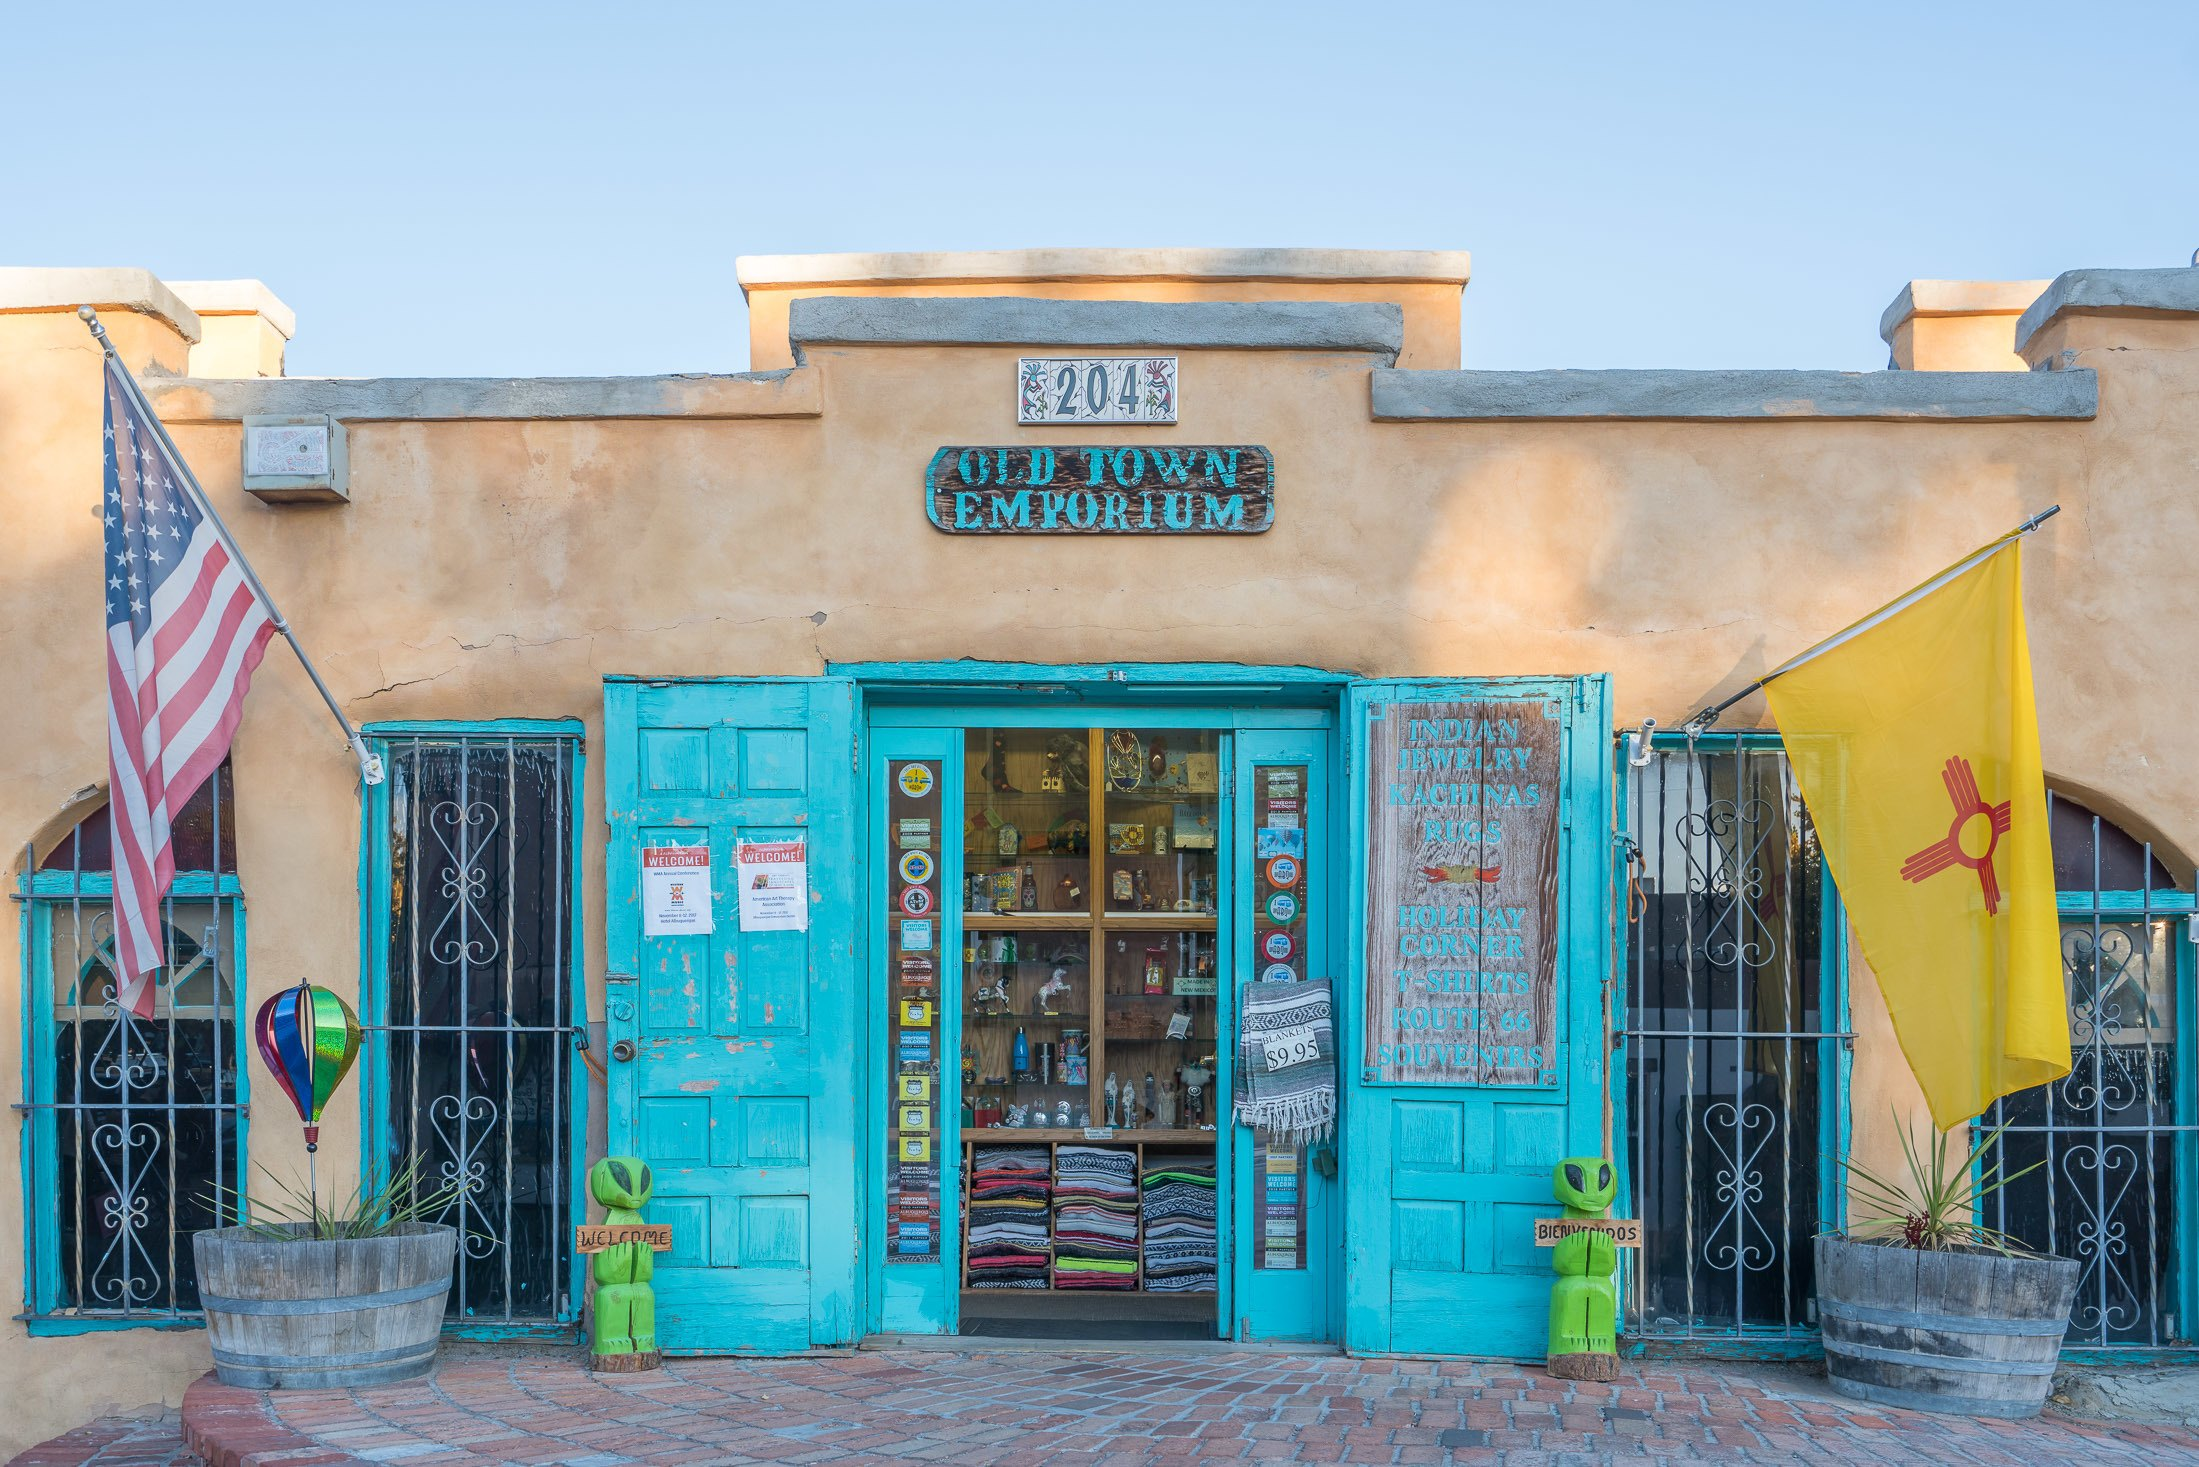 A general storefront in Old Town Albuquerque.